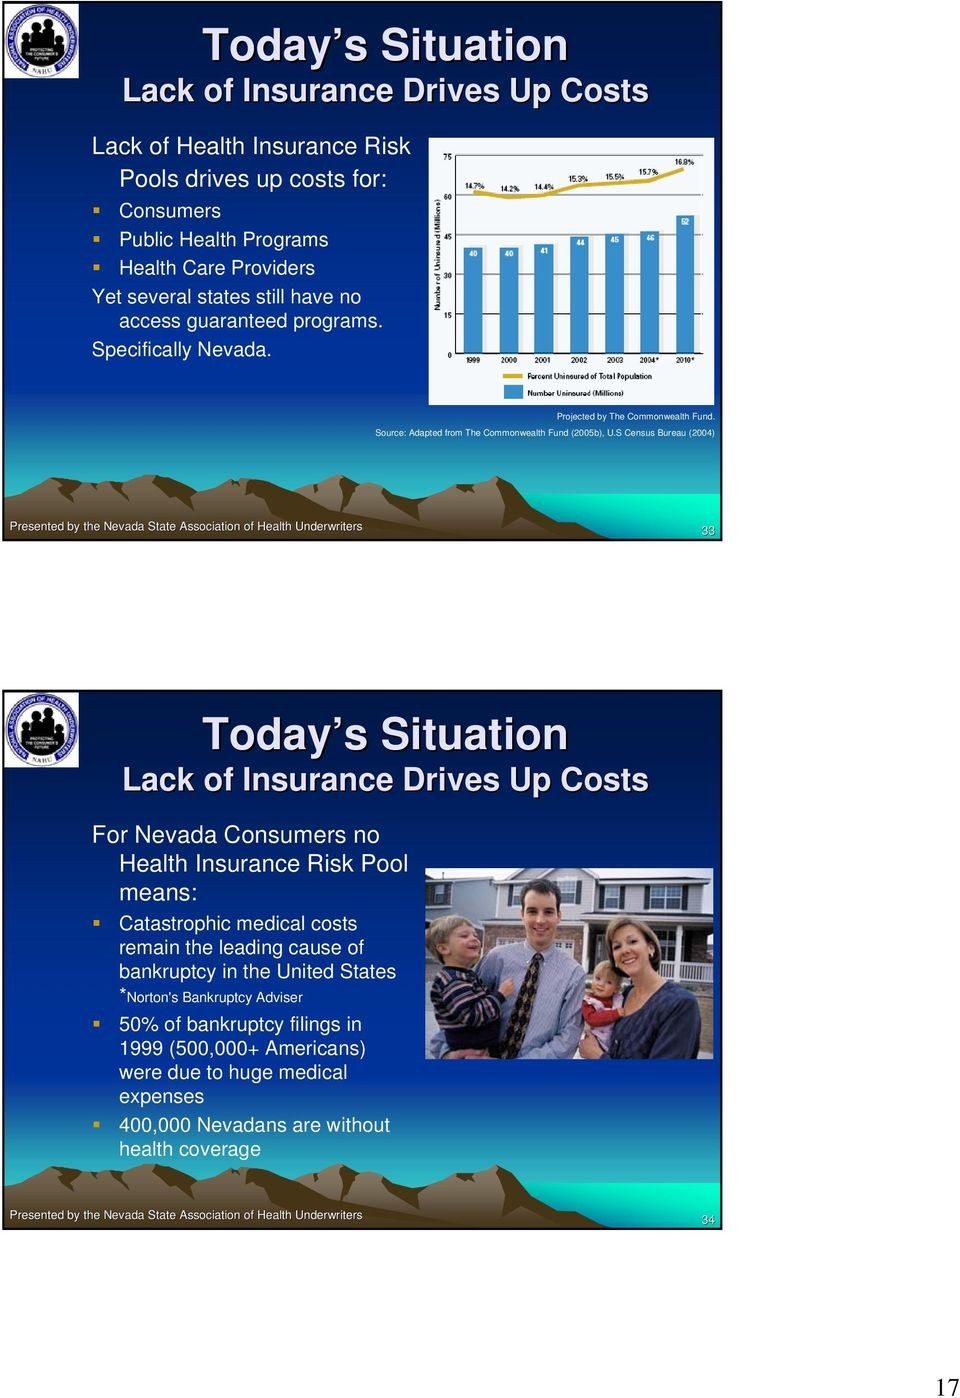 S Census Bureau (2004) 33 Today s s Situation Lack of Insurance Drives Up Costs For Nevada Consumers no Health Insurance Risk Pool means: Catastrophic medical costs remain the